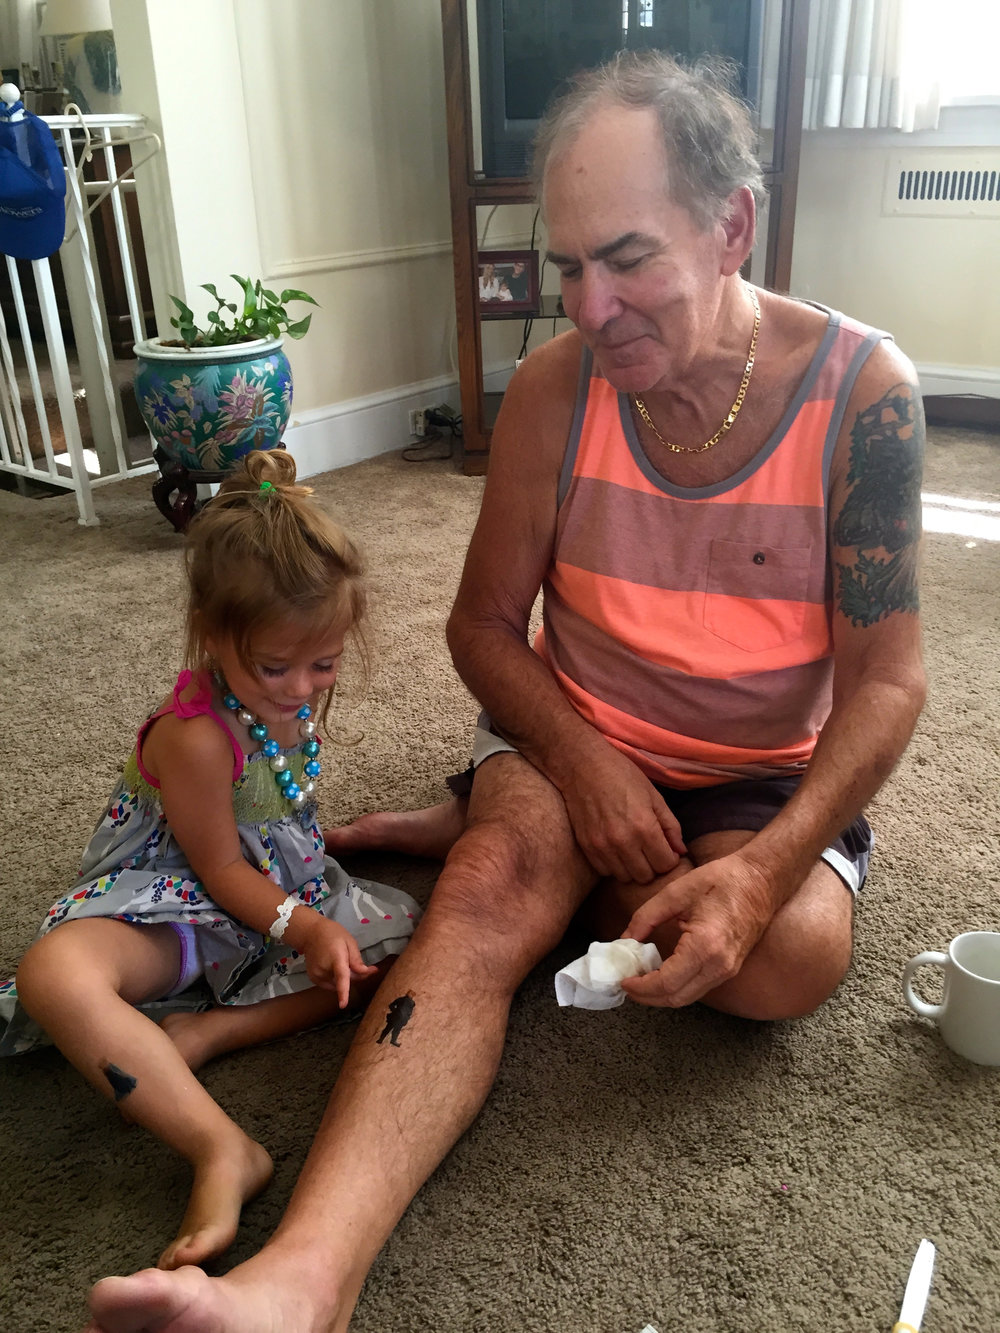 My father meets his 3-year-old granddaughter, and they bond over tattoos (2015).